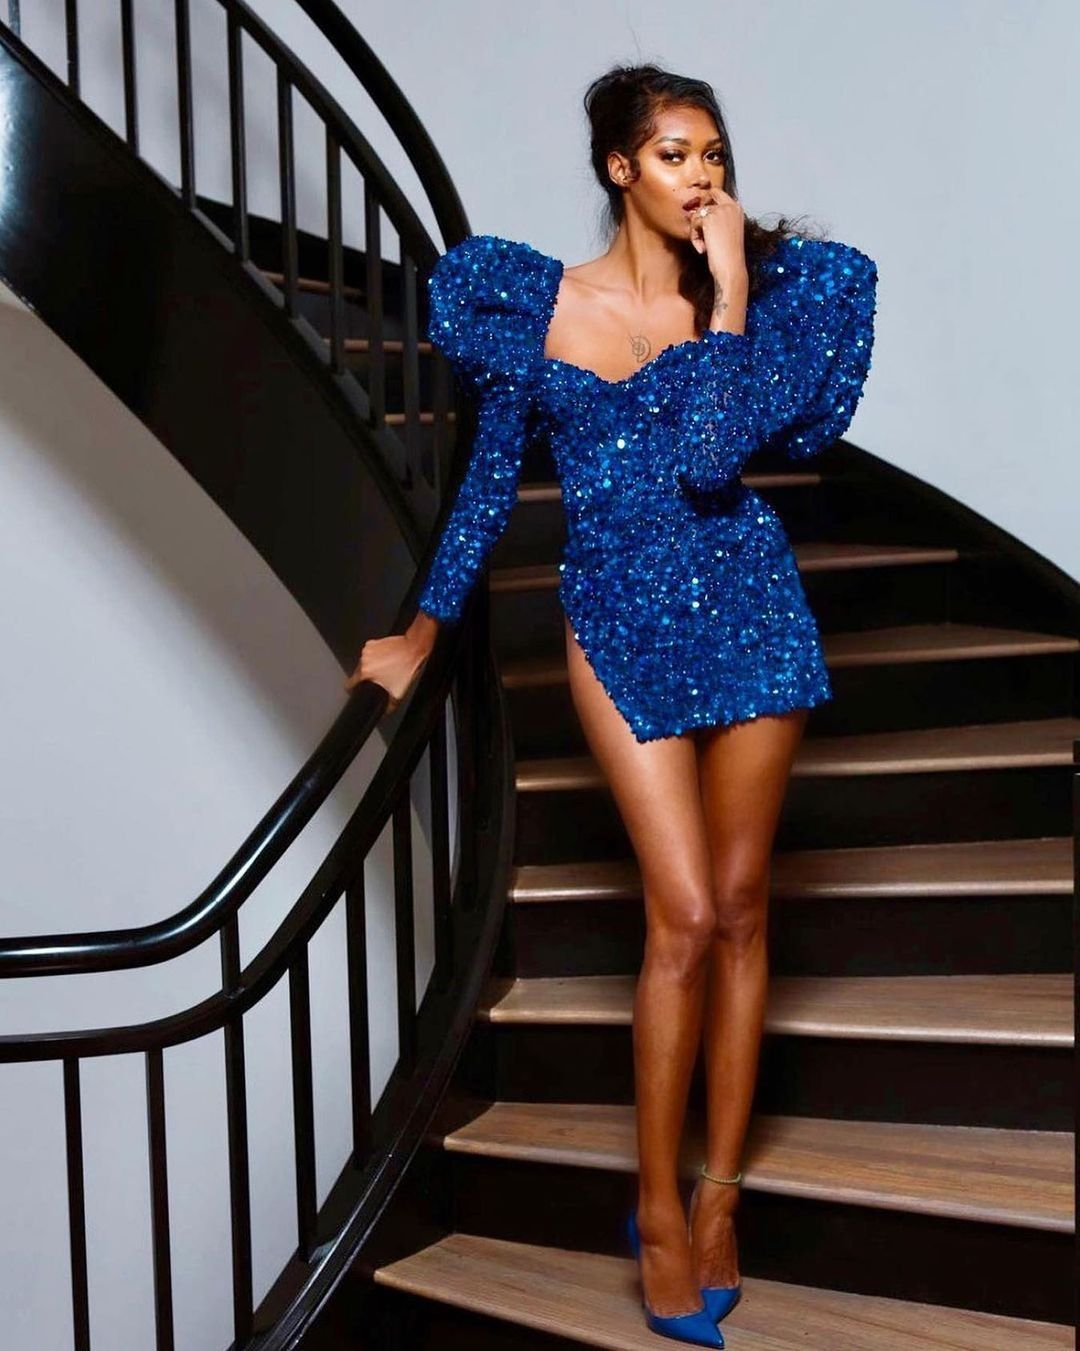 Albina Dyla On Instagram The Victoria S Secret Angel Iamjypsywhite Slaying This Royal Blue In 2021 Evening Dresses With Sleeves Mini Dress Bodycon Cocktail Dress [ 1351 x 1080 Pixel ]